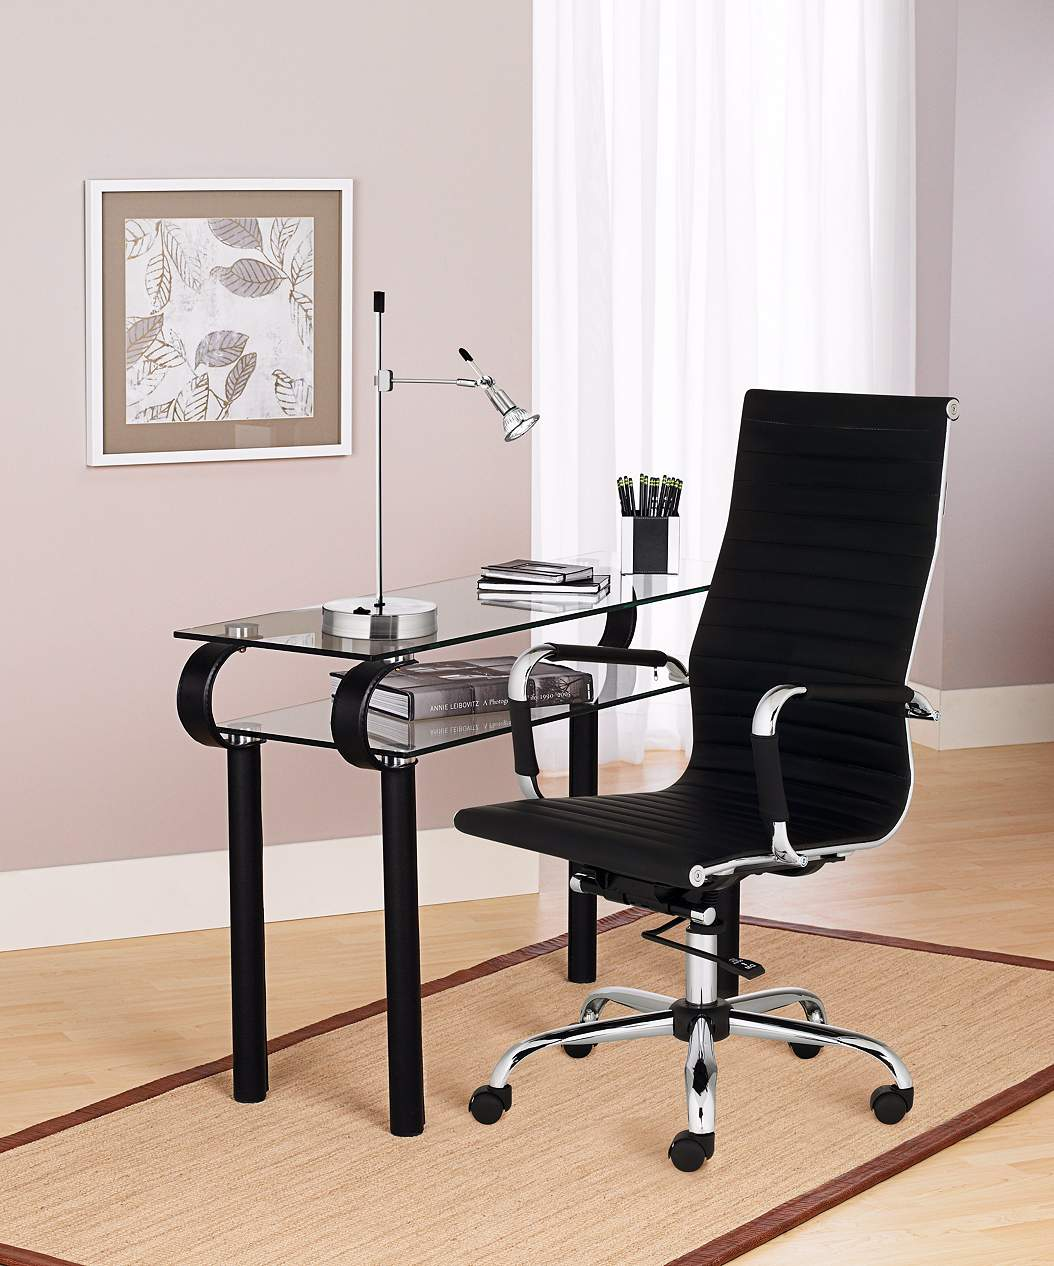 Tips on choosing the perfect office desk chair